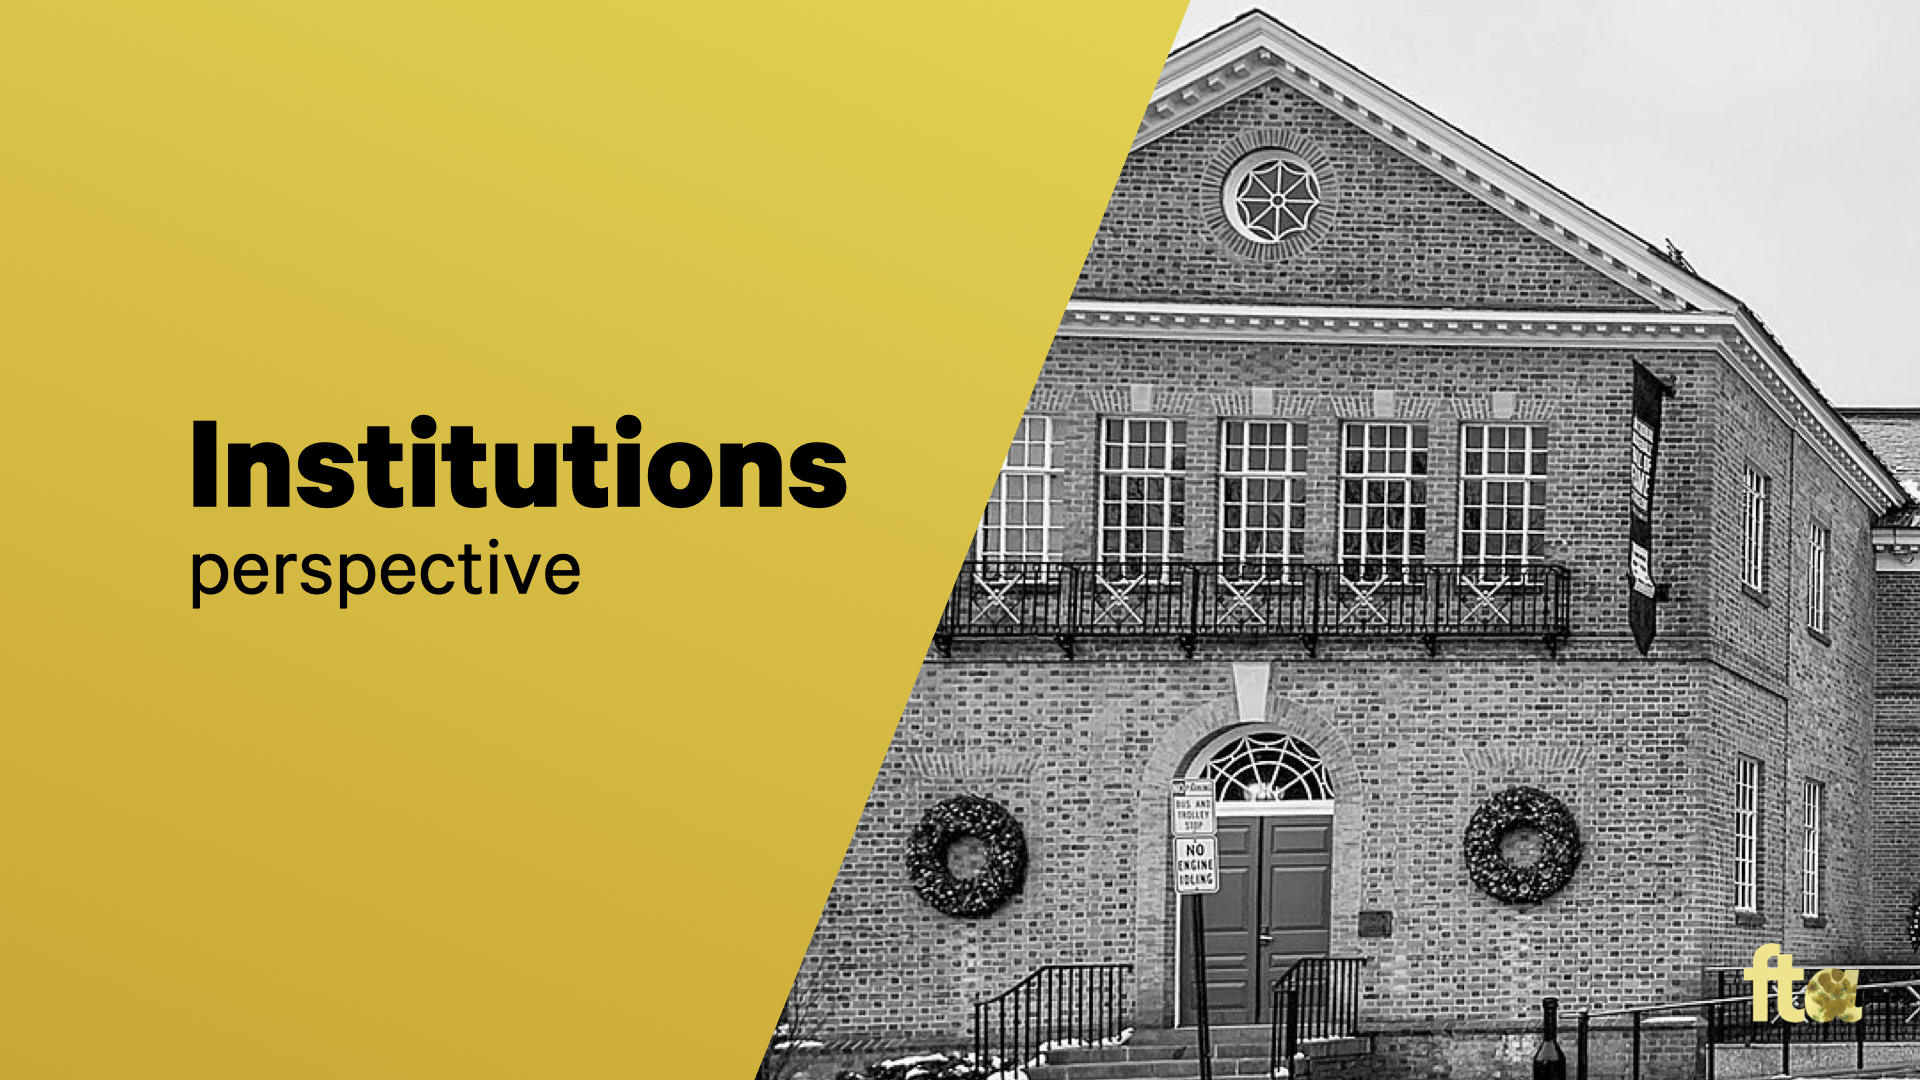 Institutions perspective